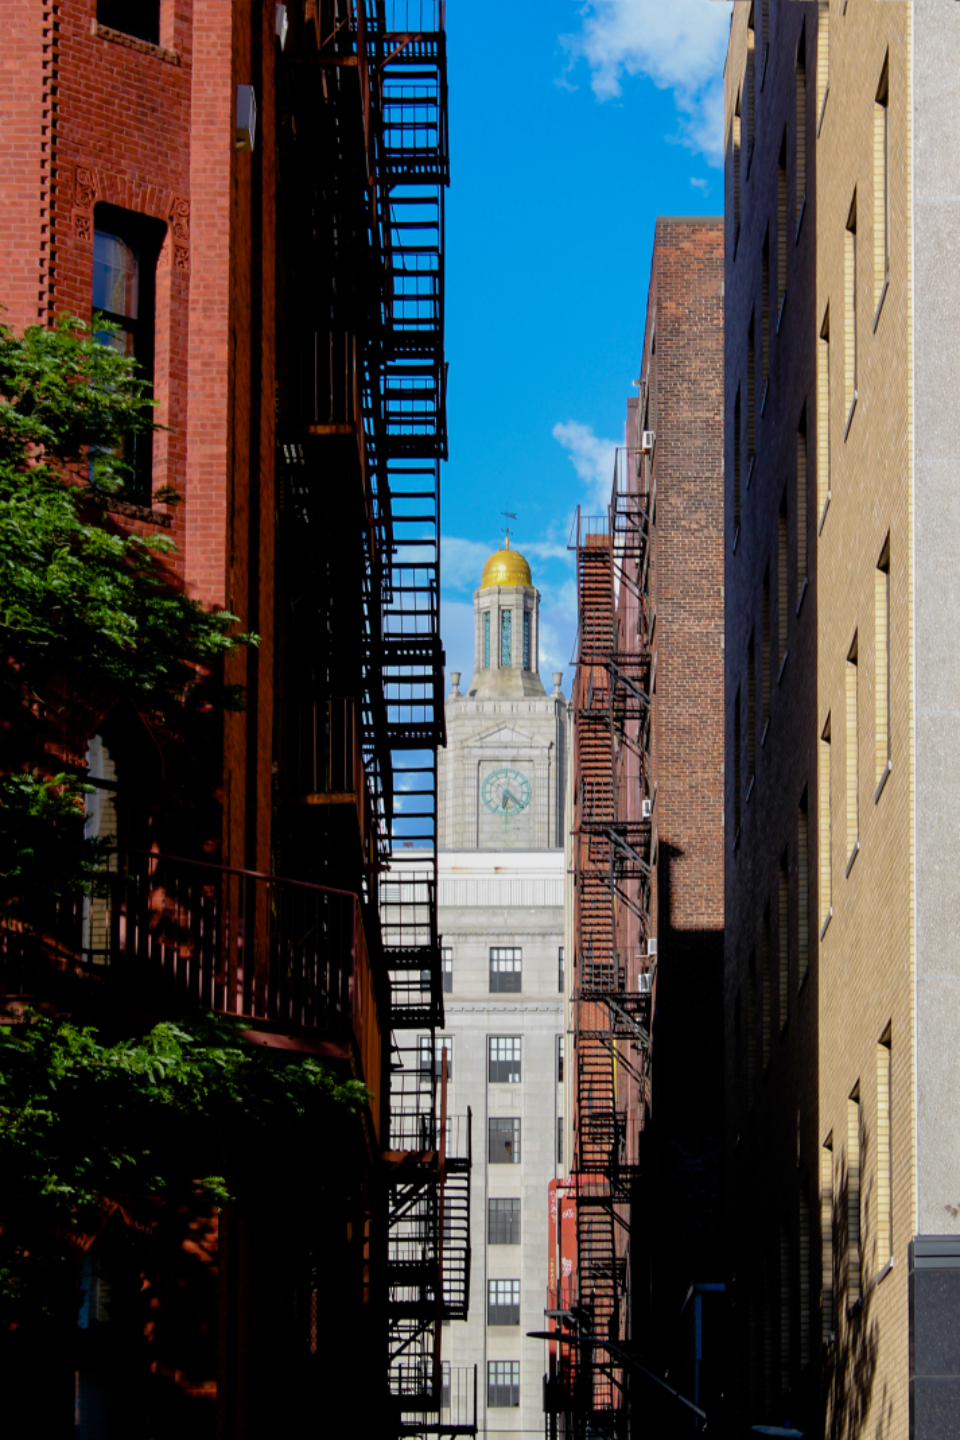 city fire escape buildings alley windows apartments sky clouds brick tall stairs narrow exterior architecture urban downtown